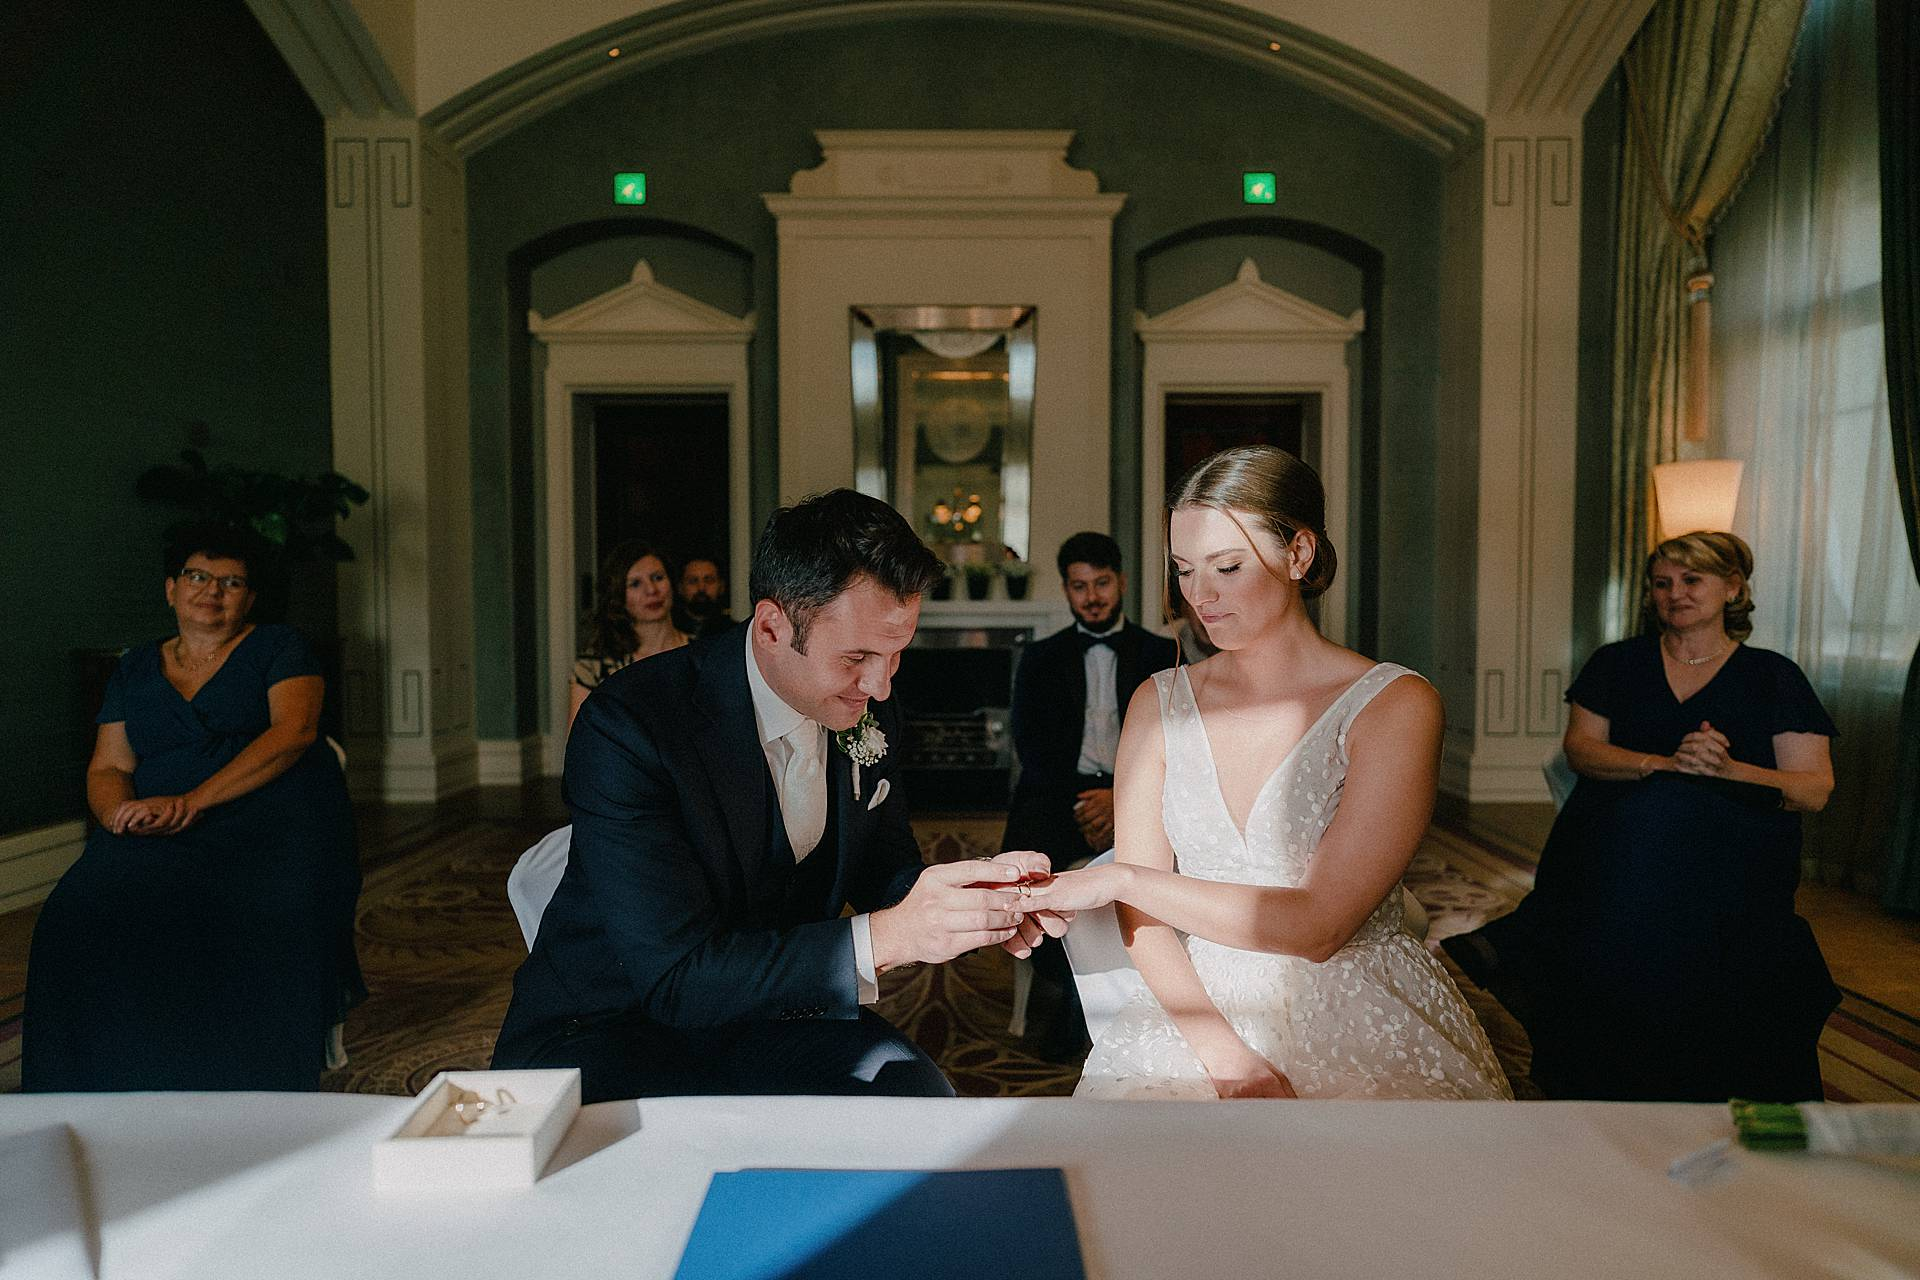 Zurich Wedding Photographer - Dolder Grand | The groom places a wedding ring on the brides finger